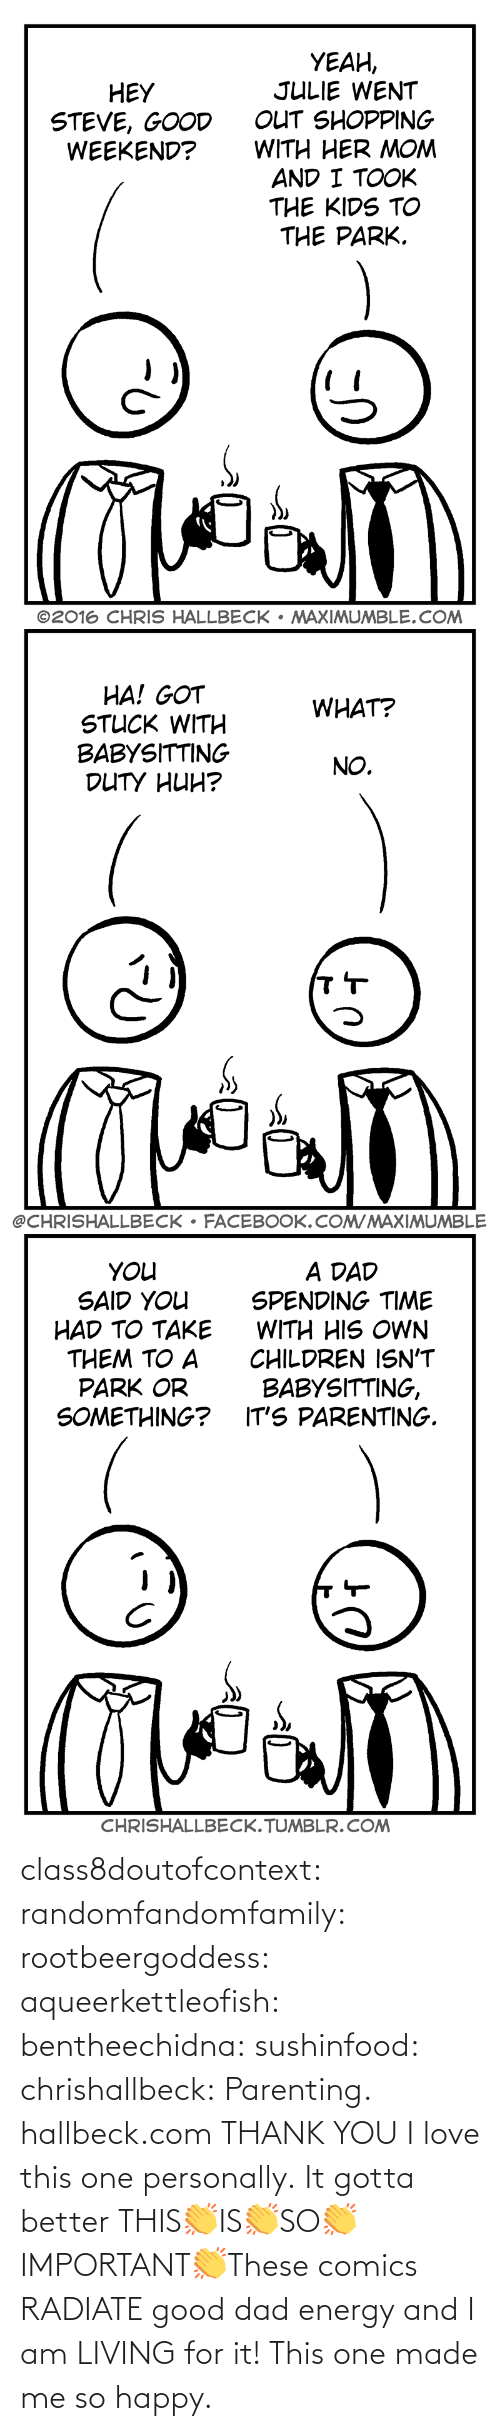 data: class8doutofcontext: randomfandomfamily:  rootbeergoddess:  aqueerkettleofish:  bentheechidna:  sushinfood:  chrishallbeck:  Parenting. hallbeck.com  THANK YOU  I love this one personally.    It gotta better   THIS👏IS👏SO👏IMPORTANT👏These comics RADIATE good dad energy and I am LIVING for it!    This one made me so happy.